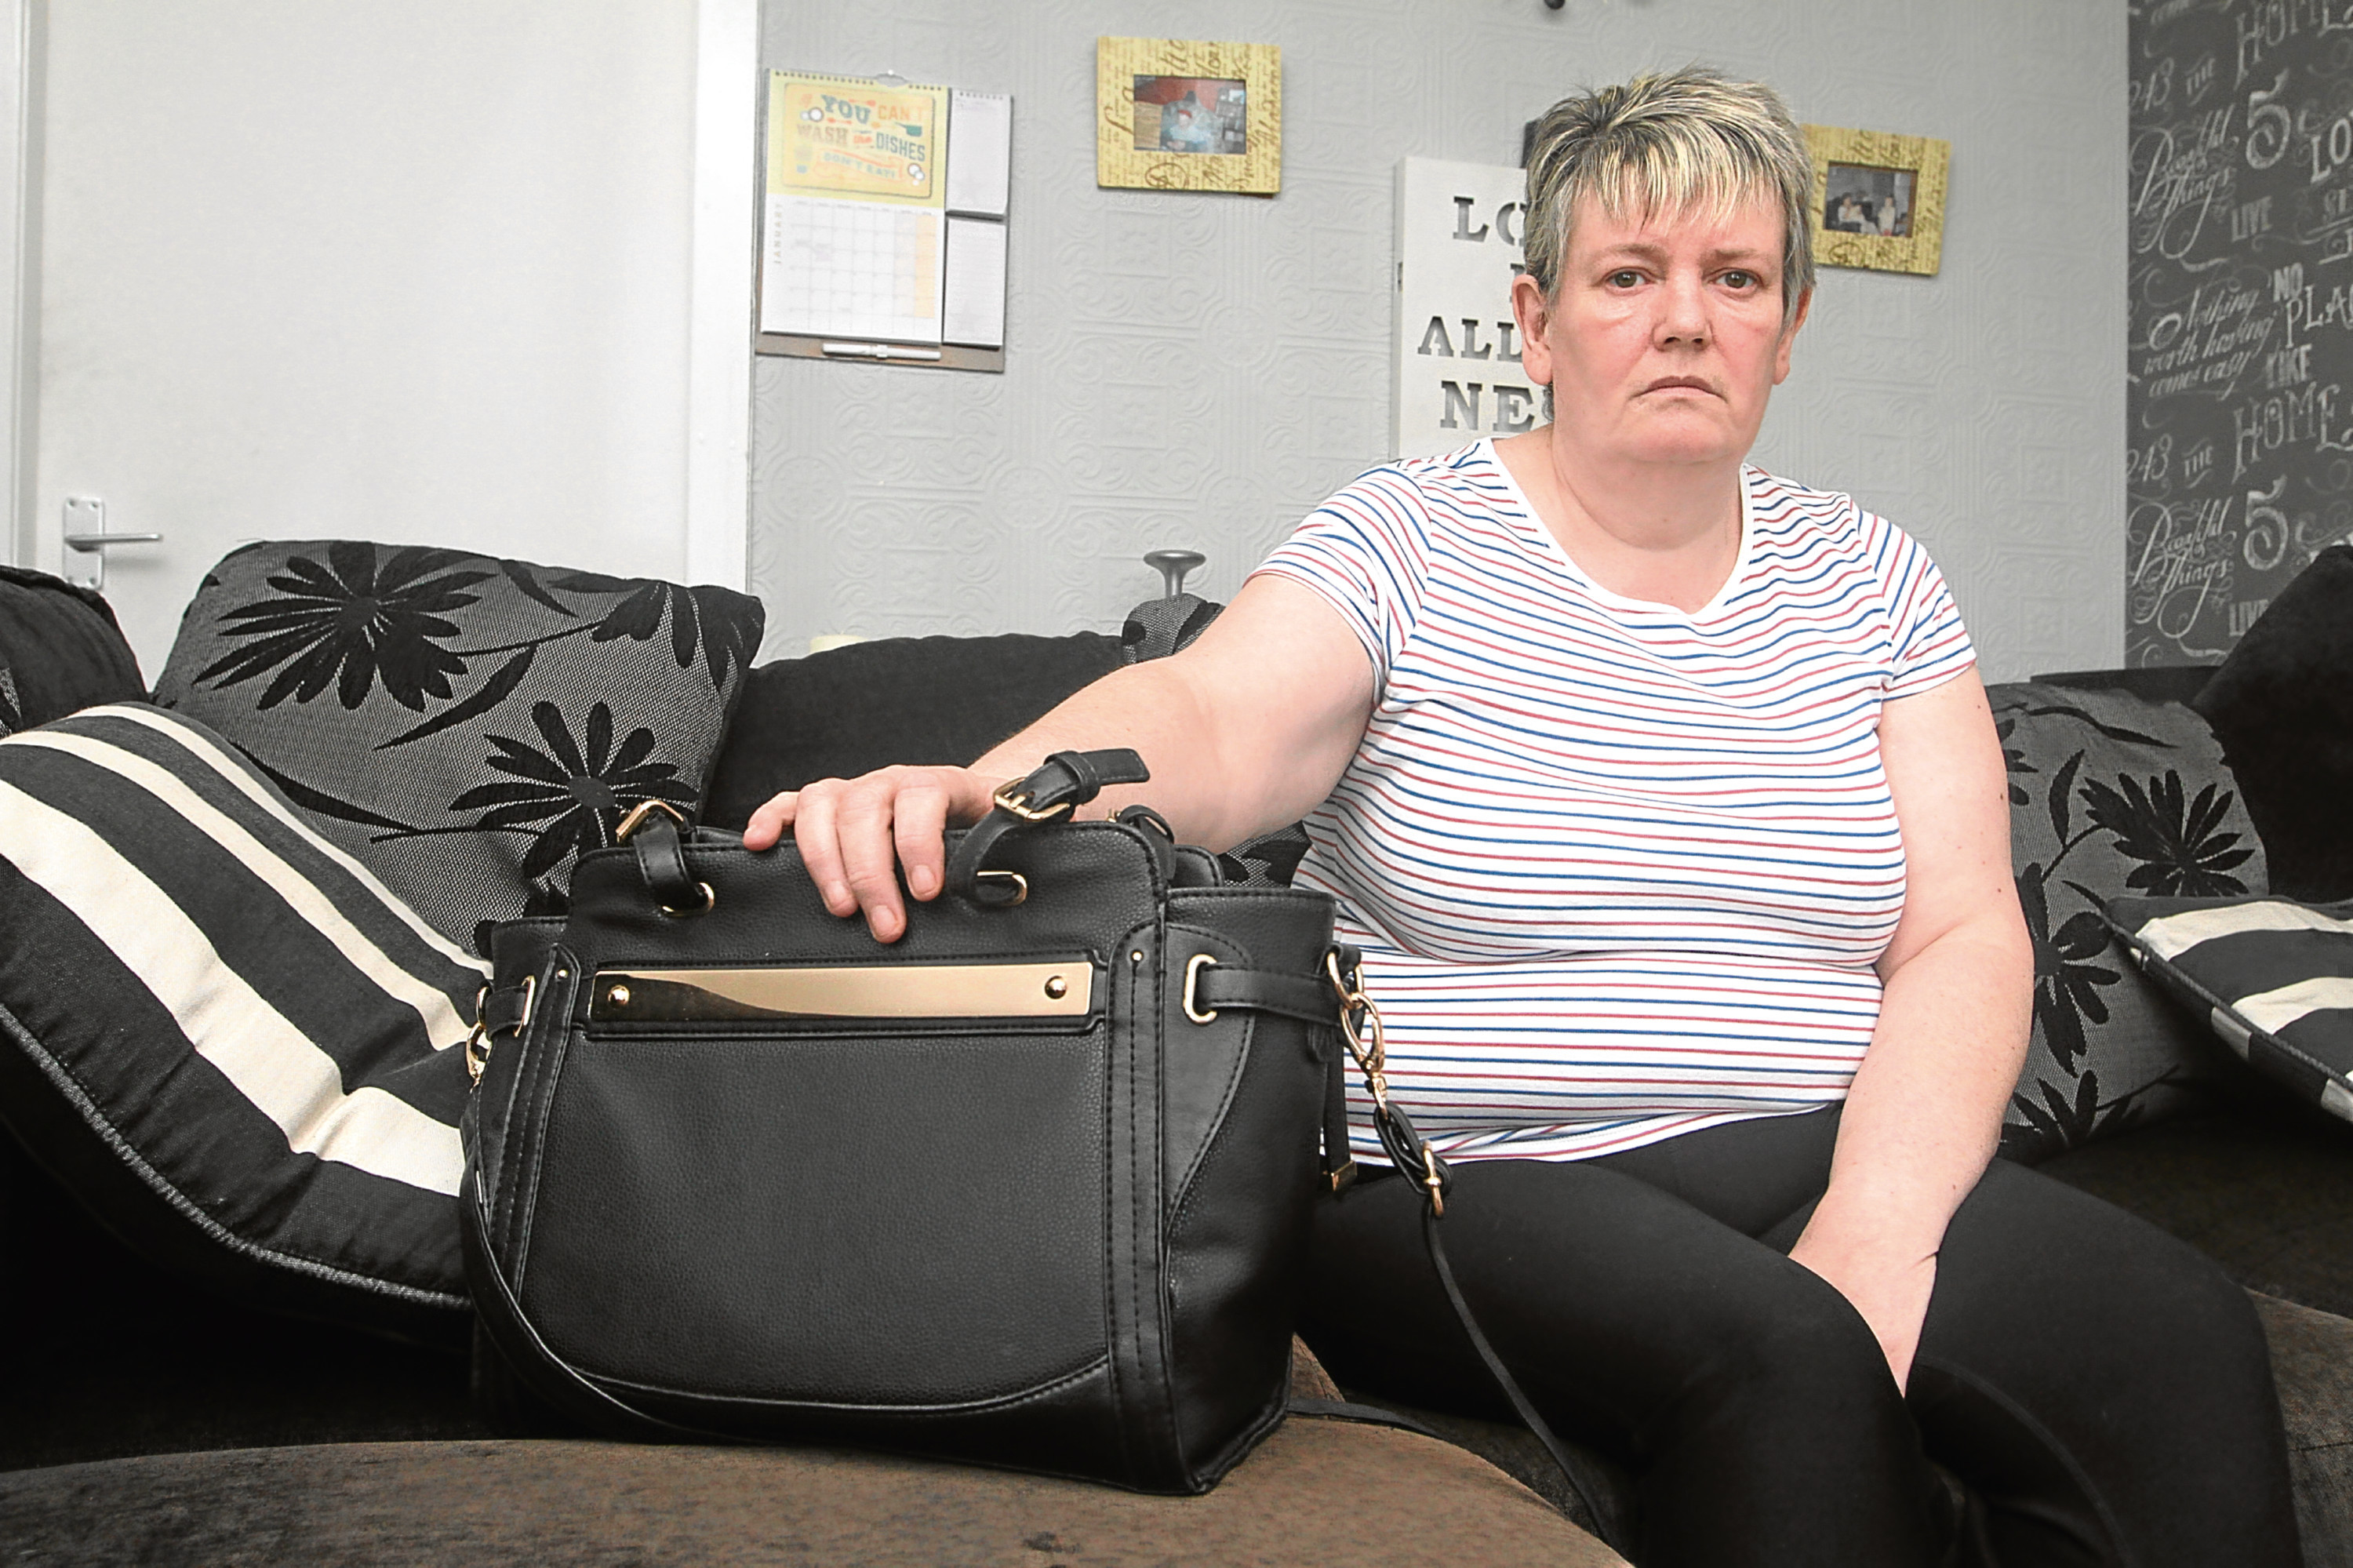 Pauline Yuill confronted a would-be thief who tried to take her purse while walking down the Marketgait.